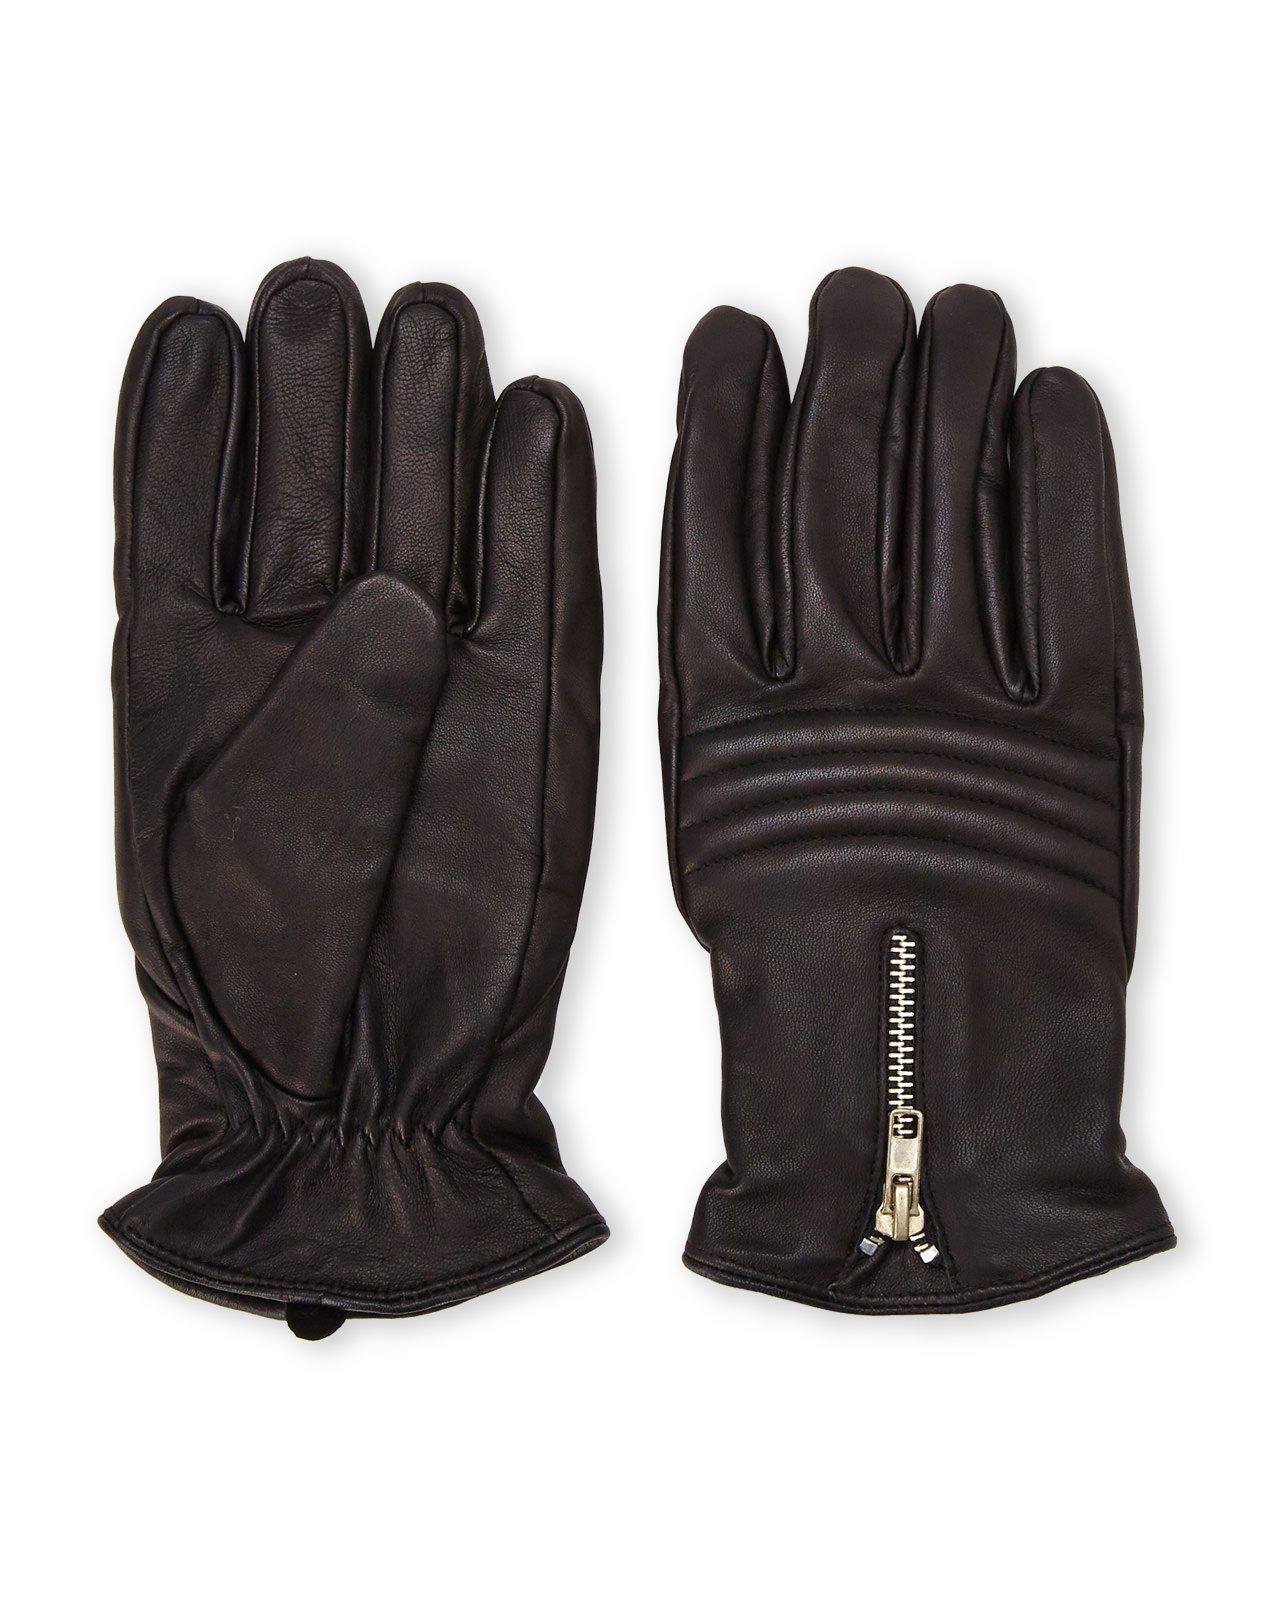 d40cf022e3f0c Gallery. Previously sold at  Century 21 · Men s Leather Gloves Men s  Leather Gloves Men s Driving ...